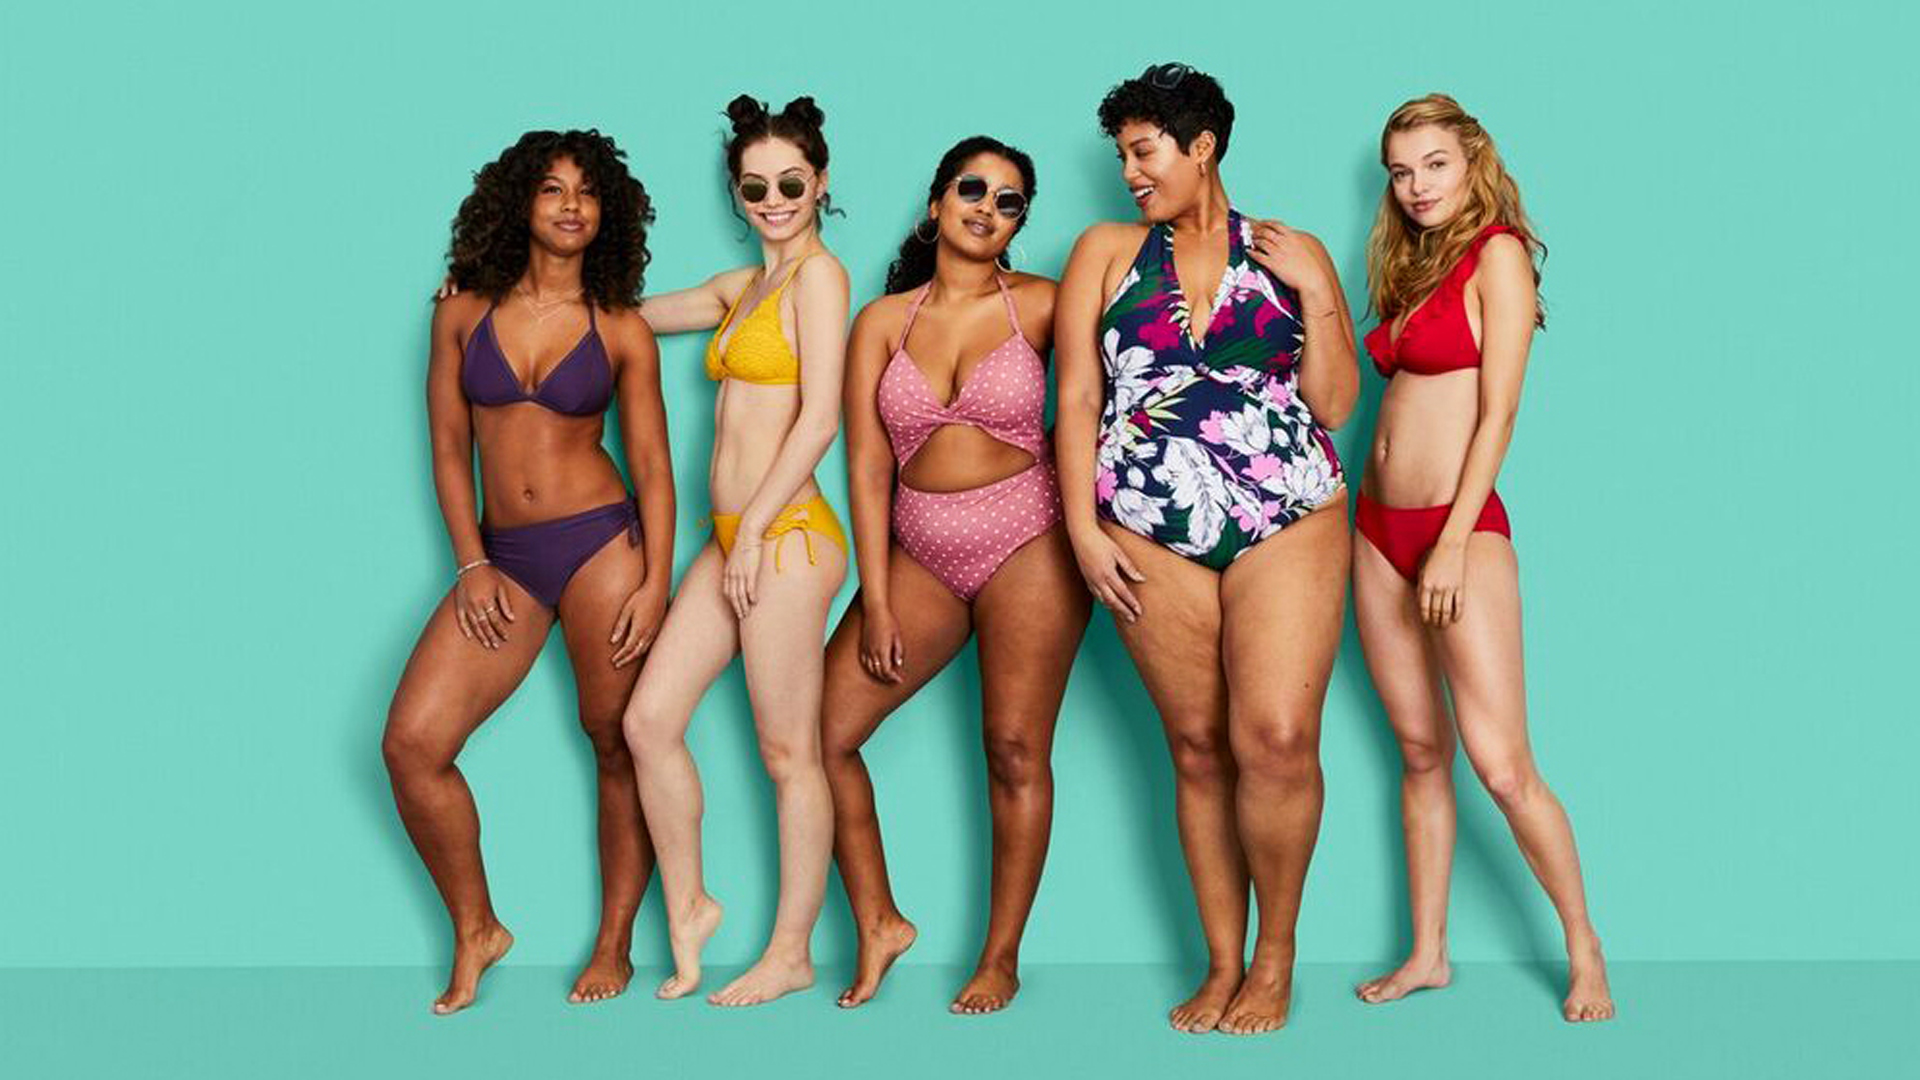 d7c1ecb1d322e Target's New Size-Inclusive Swimwear Brand Has Us Ready for Spring — in  January